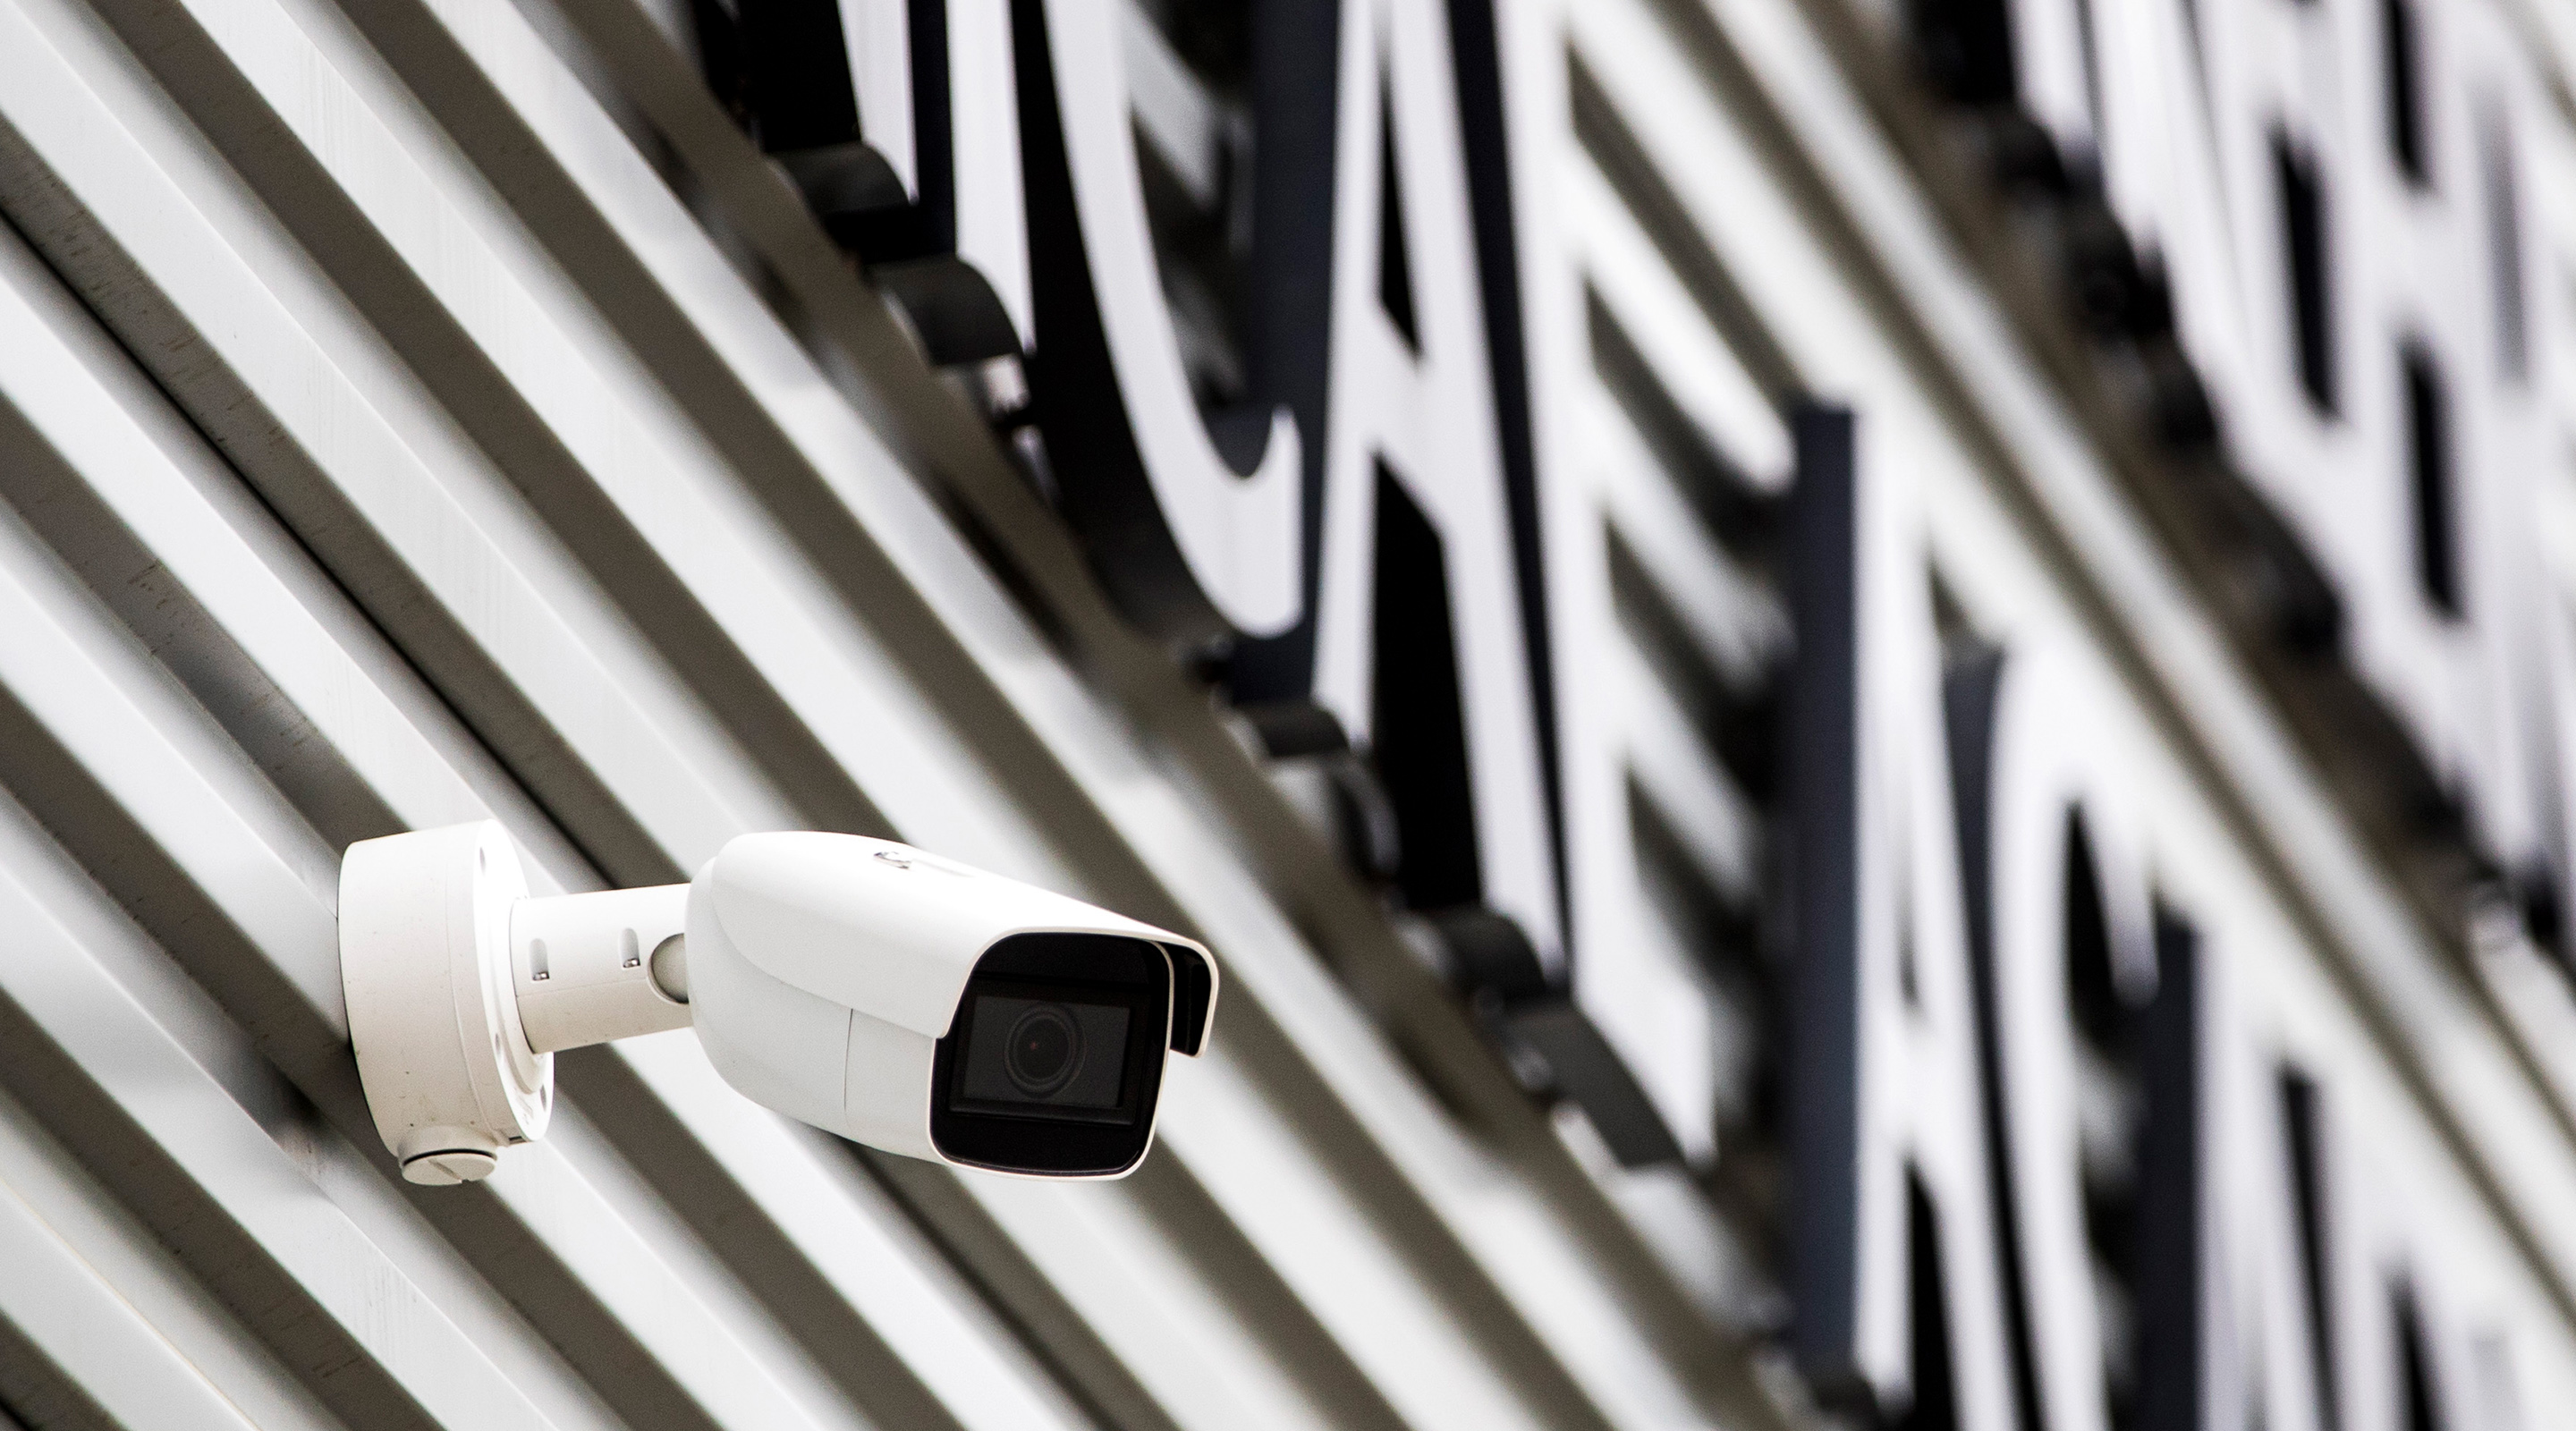 Close up Image of the side of a building focusing on a security camera